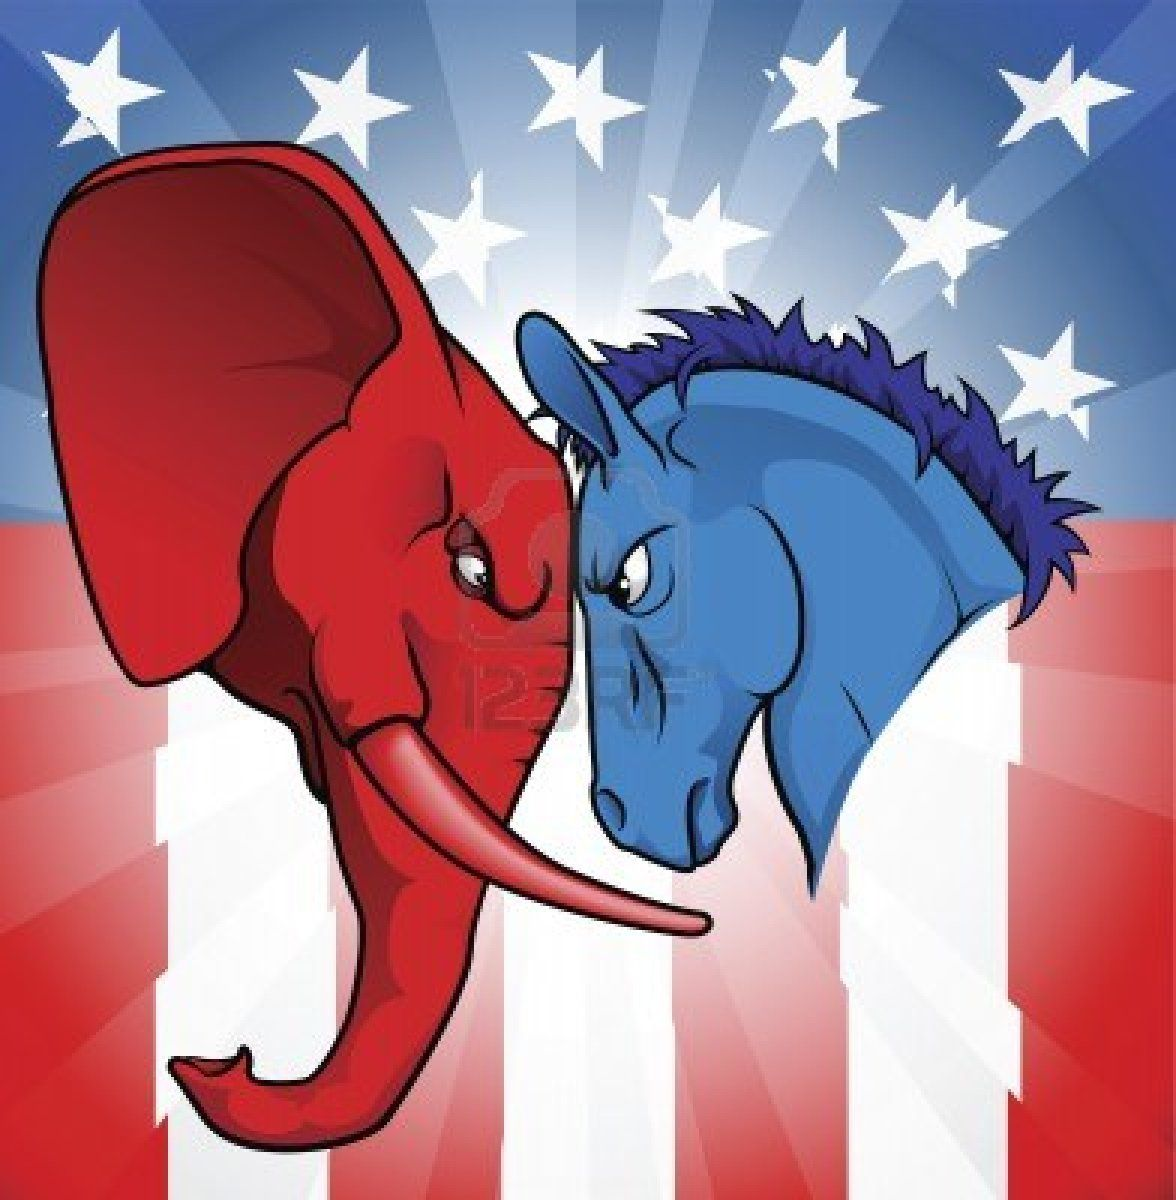 What is the difference between a democrat and a republican buy american politics by krisdog on graphicriver the democrat and republican symbols of a donkey and elephant facing off buycottarizona